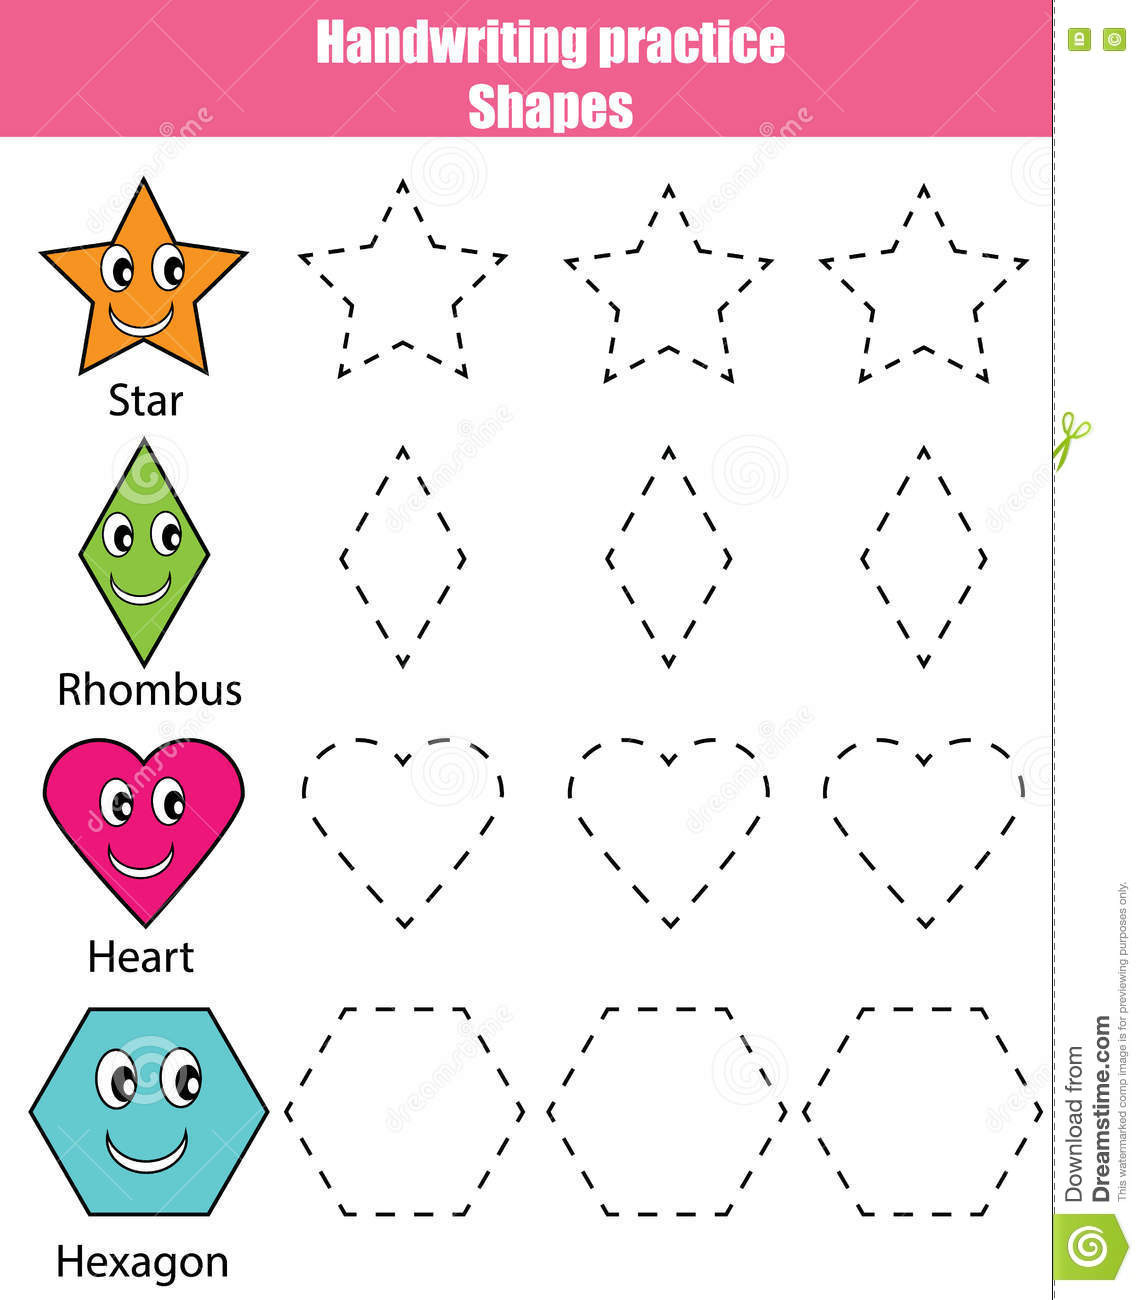 Polygon Worksheets 5th Grade Handwriting Practice Sheet Educational Children Game Kids